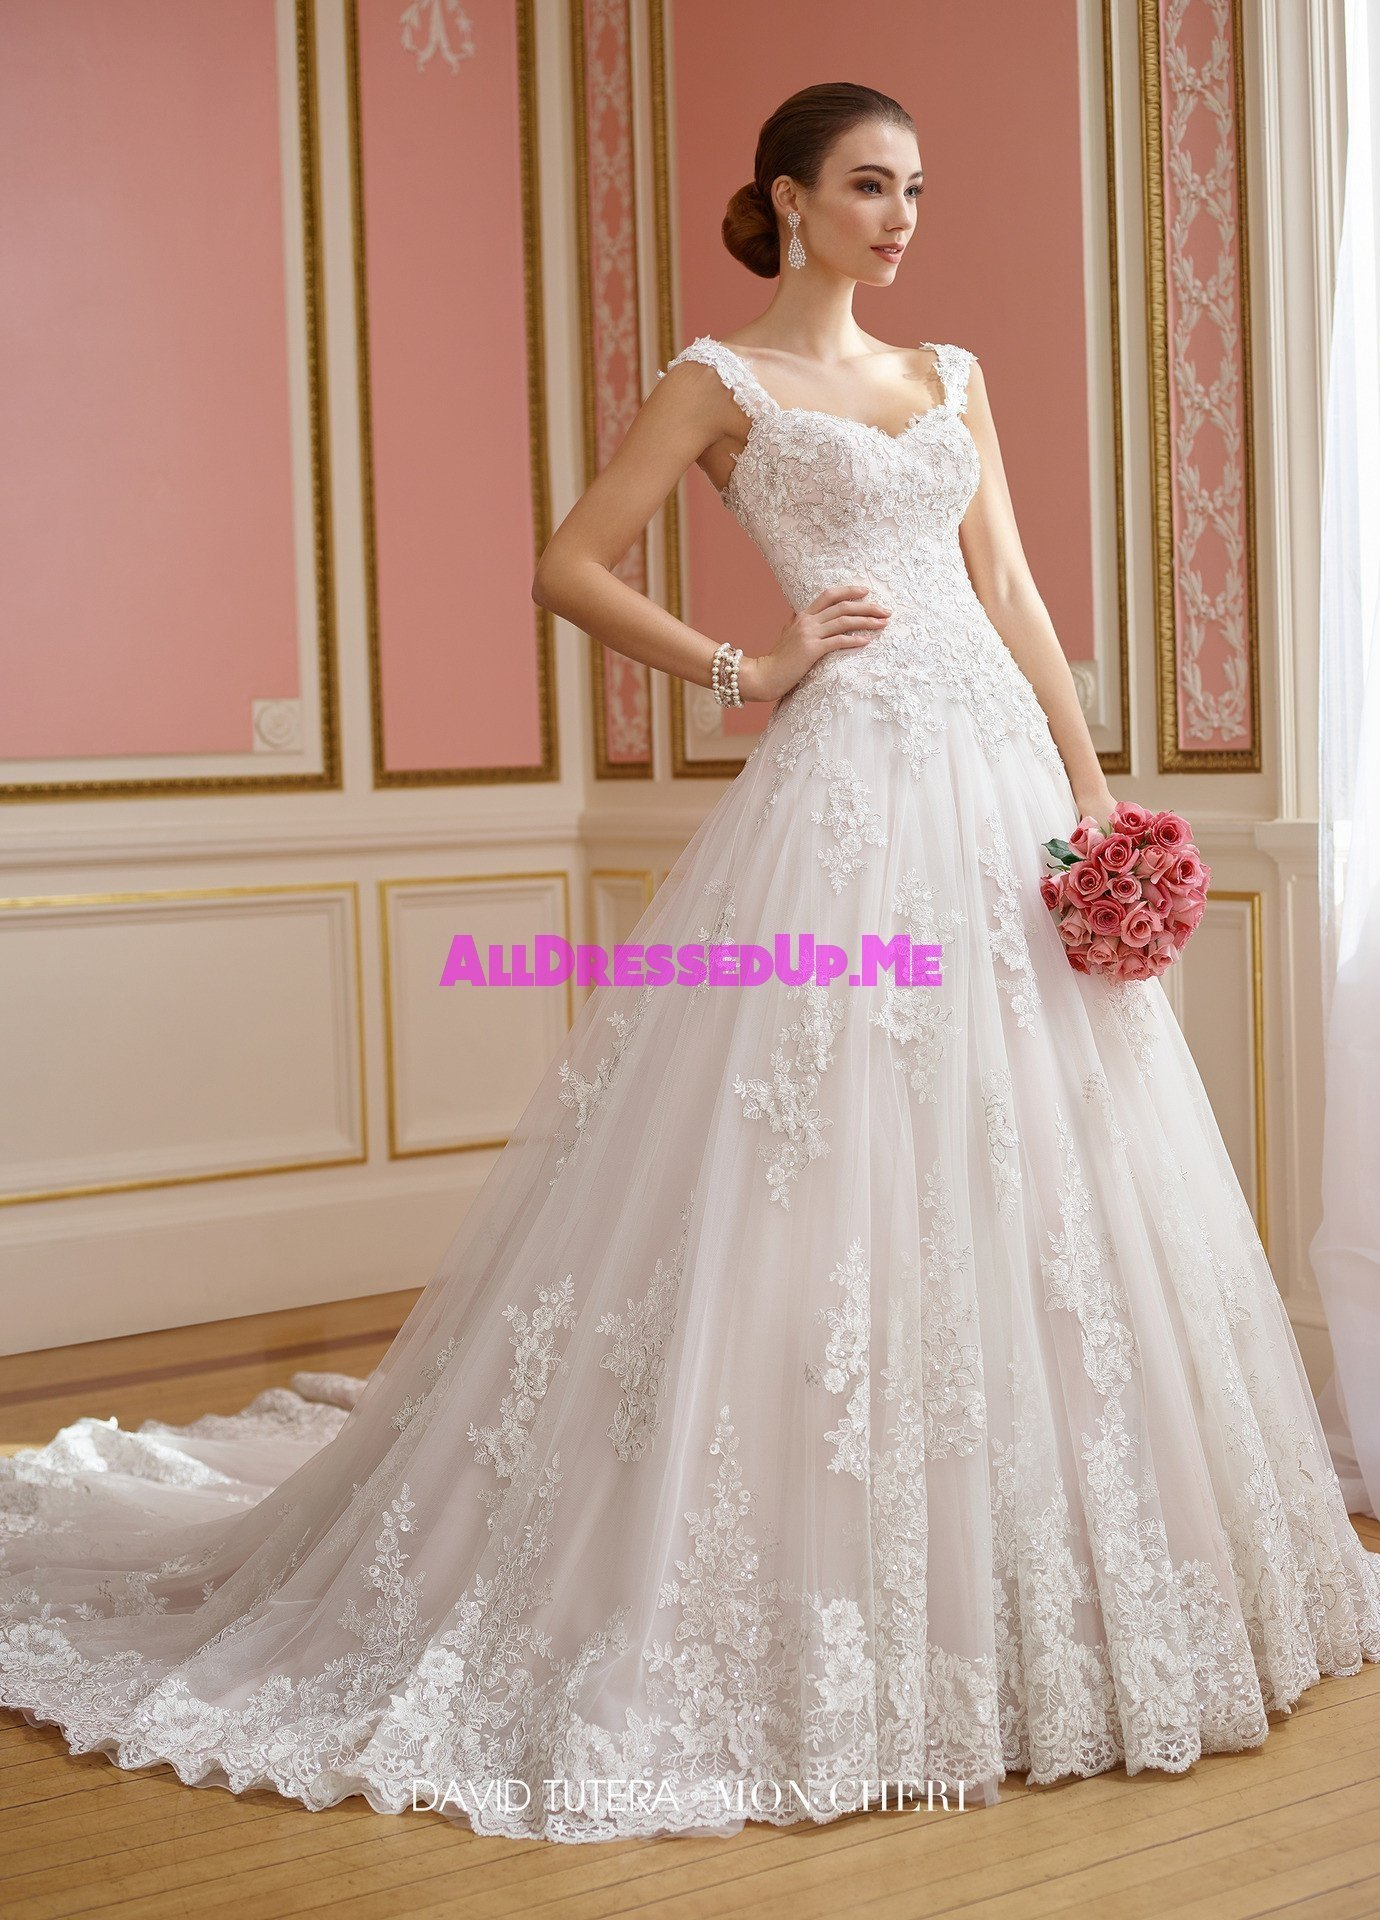 David Tutera 217210w Nellie All Dressed Up Bridal Gown Mon Cheri Wedding Gowns Dresses Chattanooga Hixson S Boutiques Tennessee Tn Georgia